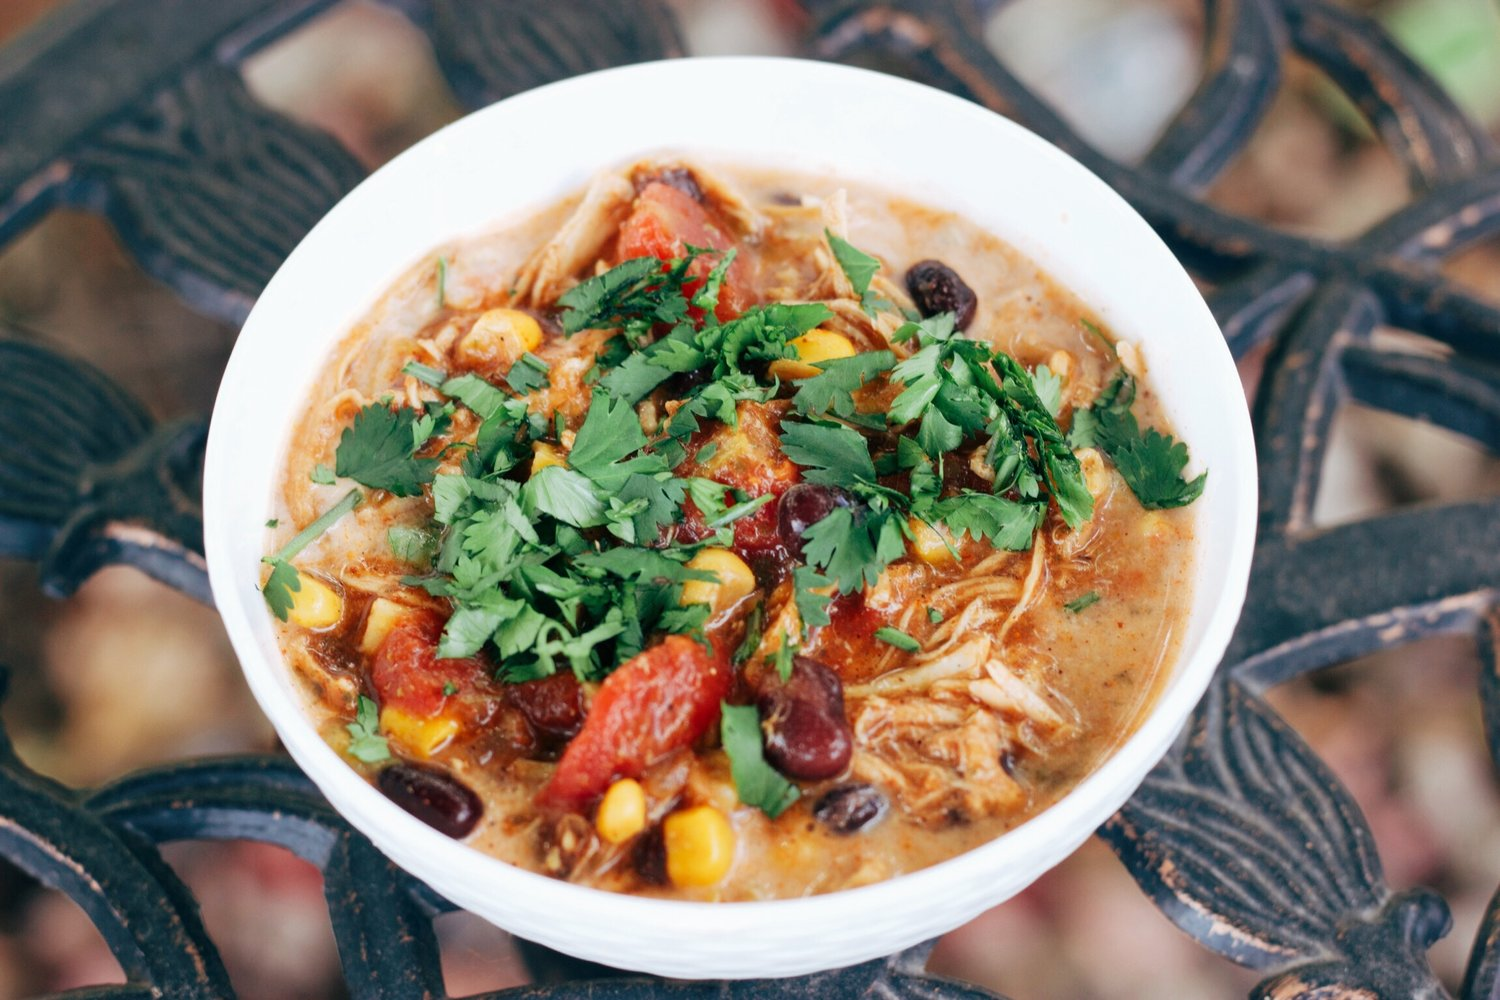 Looking for other healthy soup recipes? -